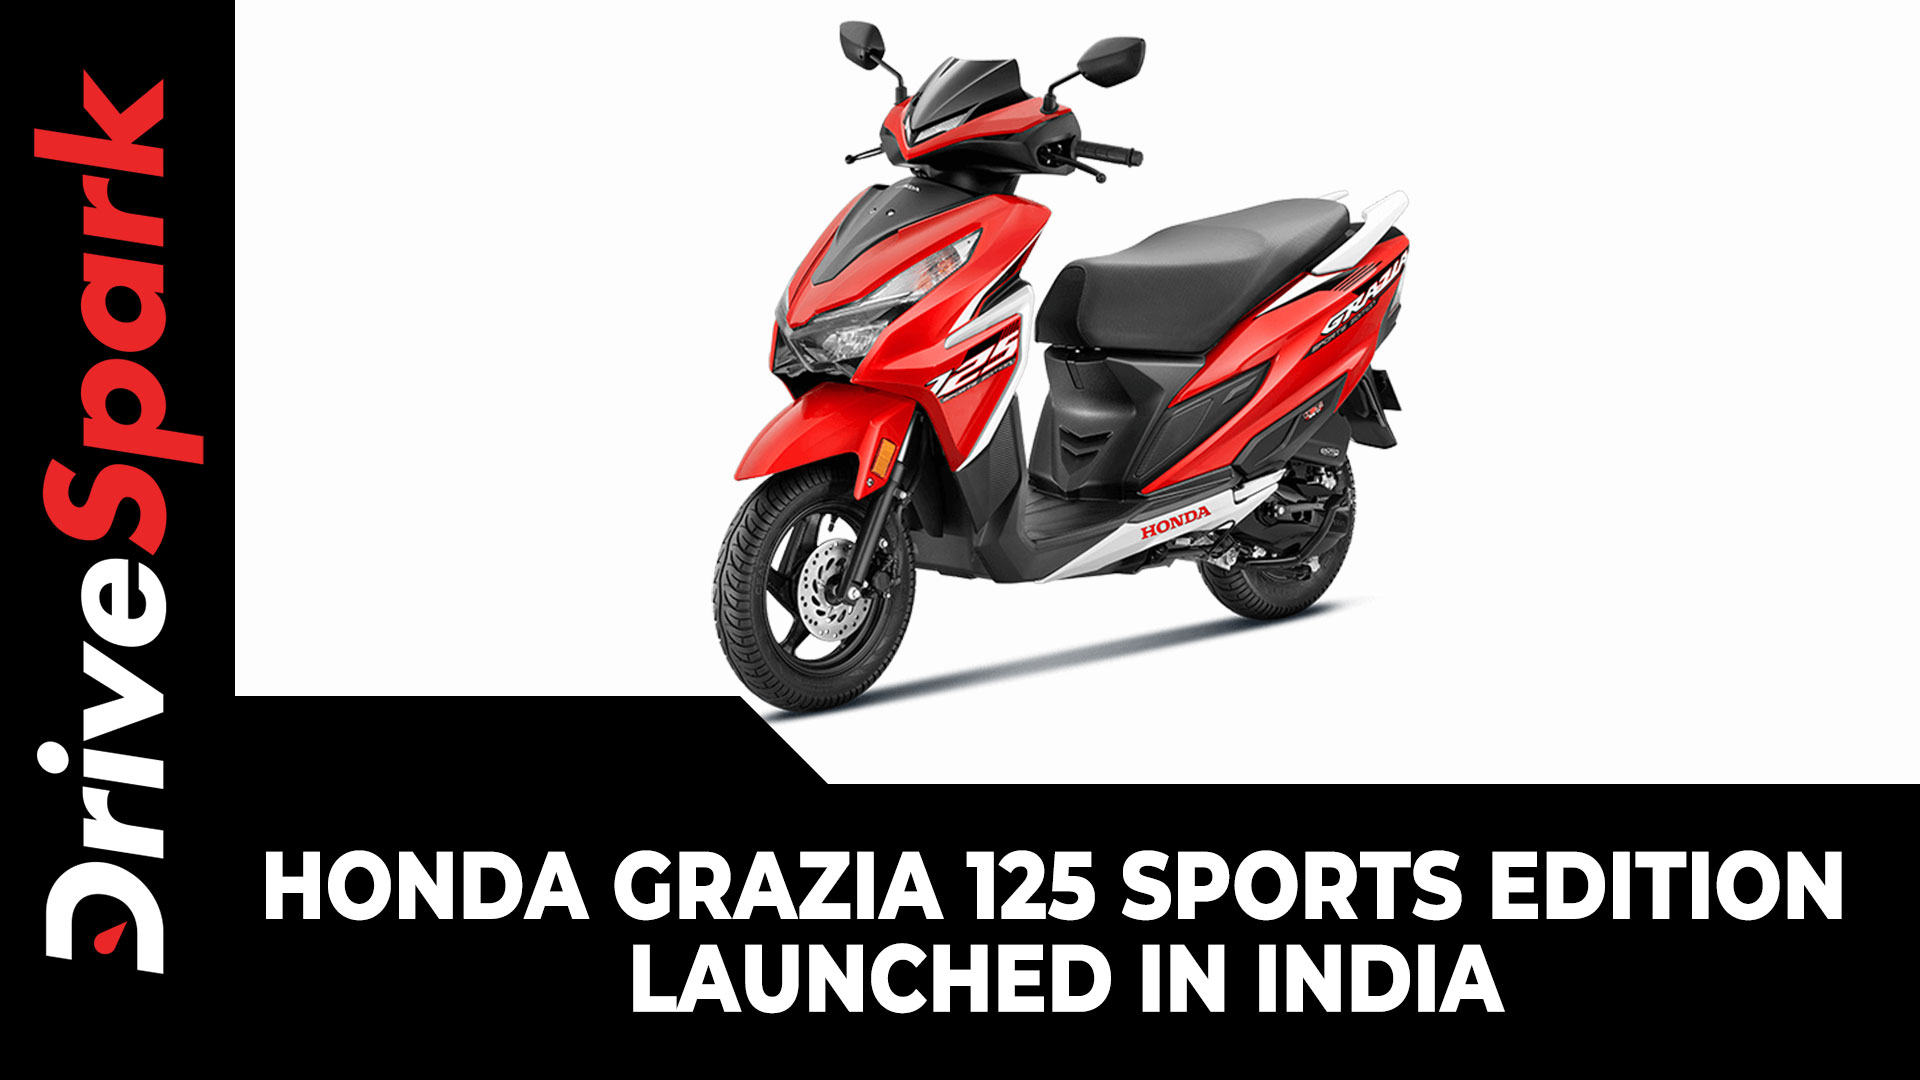 Honda Grazia 125 Sports Edition Launched In India | Prices, Specs, Features & All Other Updates